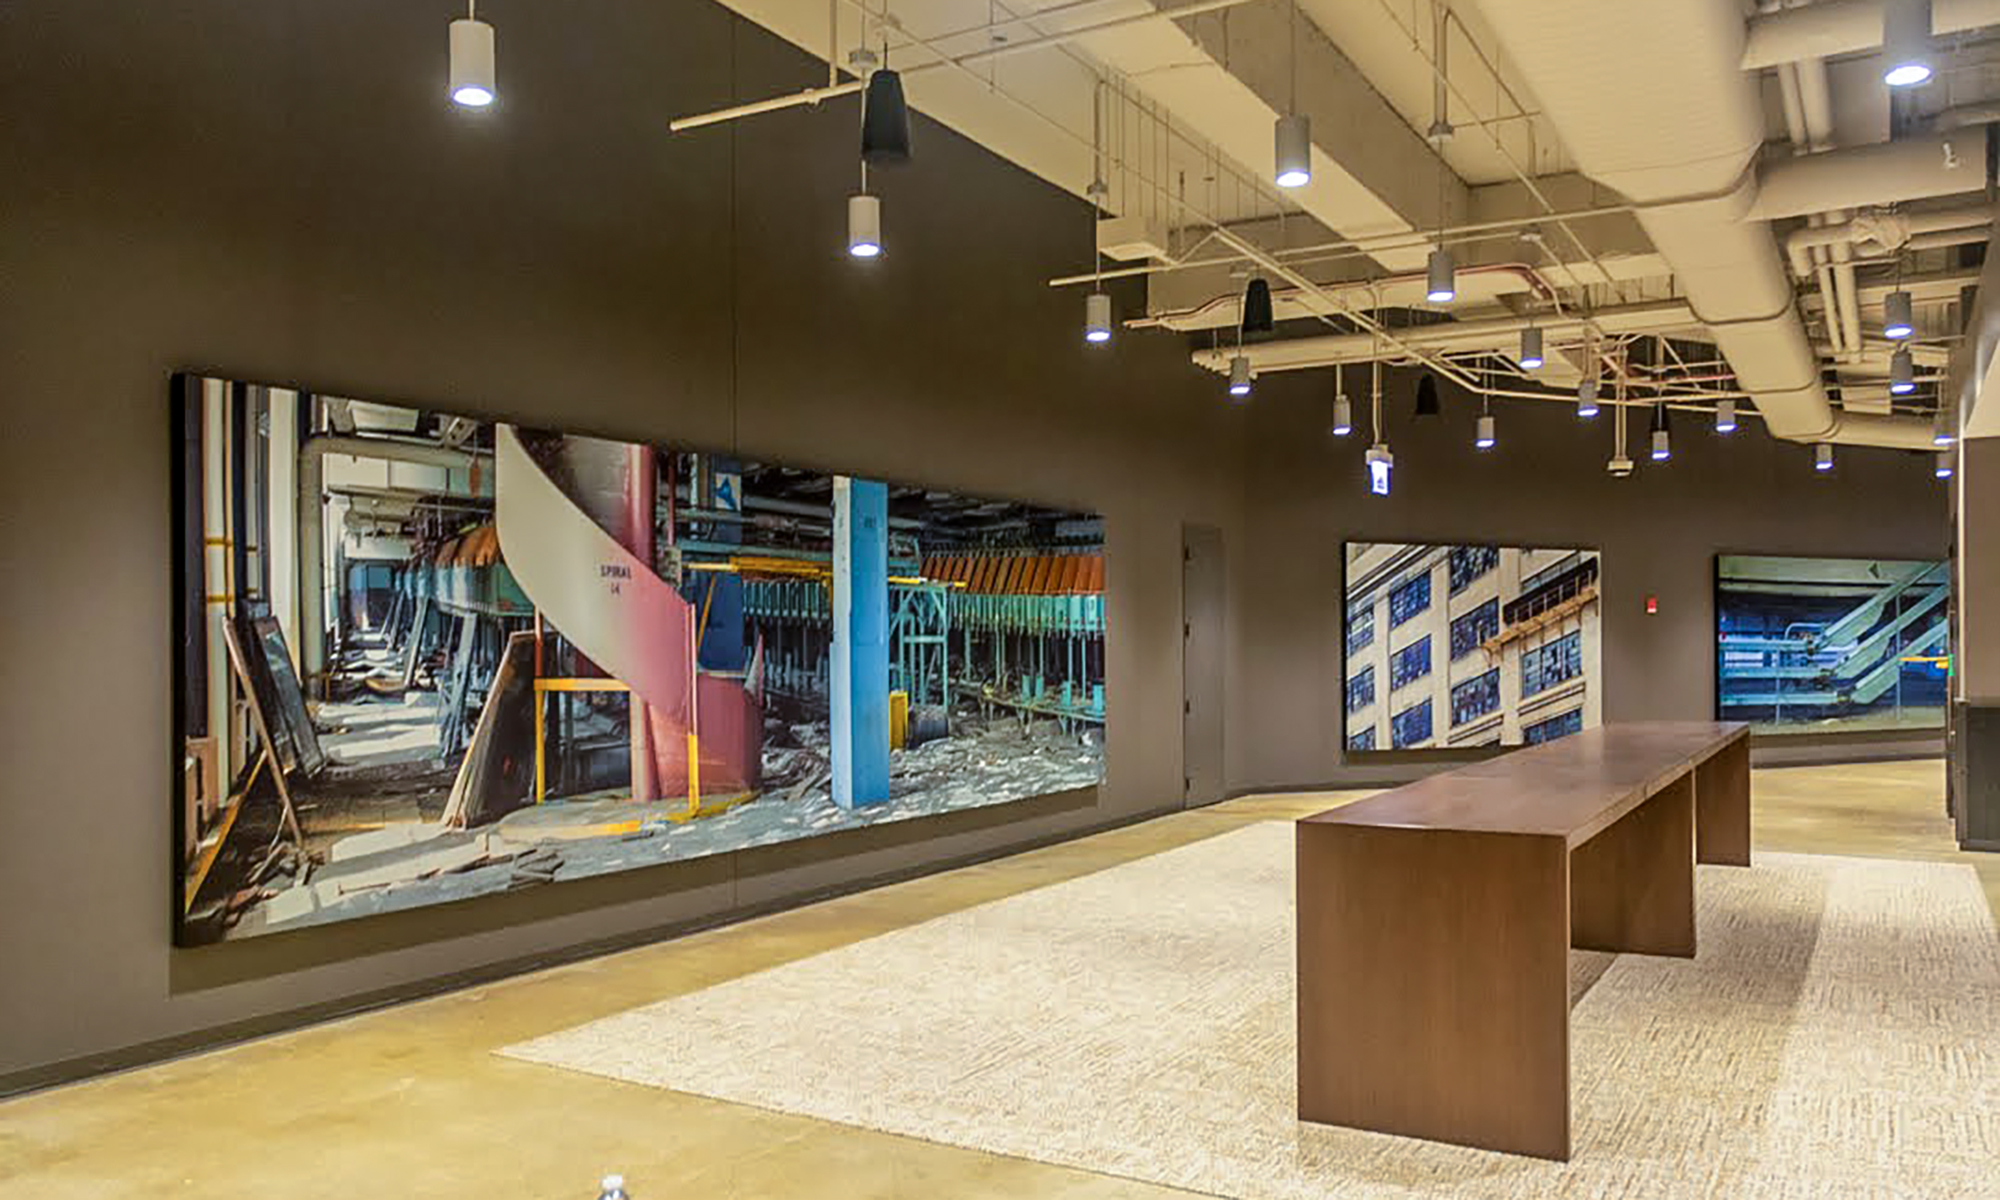 ER2 Image Group mitered the REX Frame SEG extrusions, painted them black, and mounted them to the walls of the Old Post Office in Chicago. This project was part of the largest redevelopment of a building in the US.